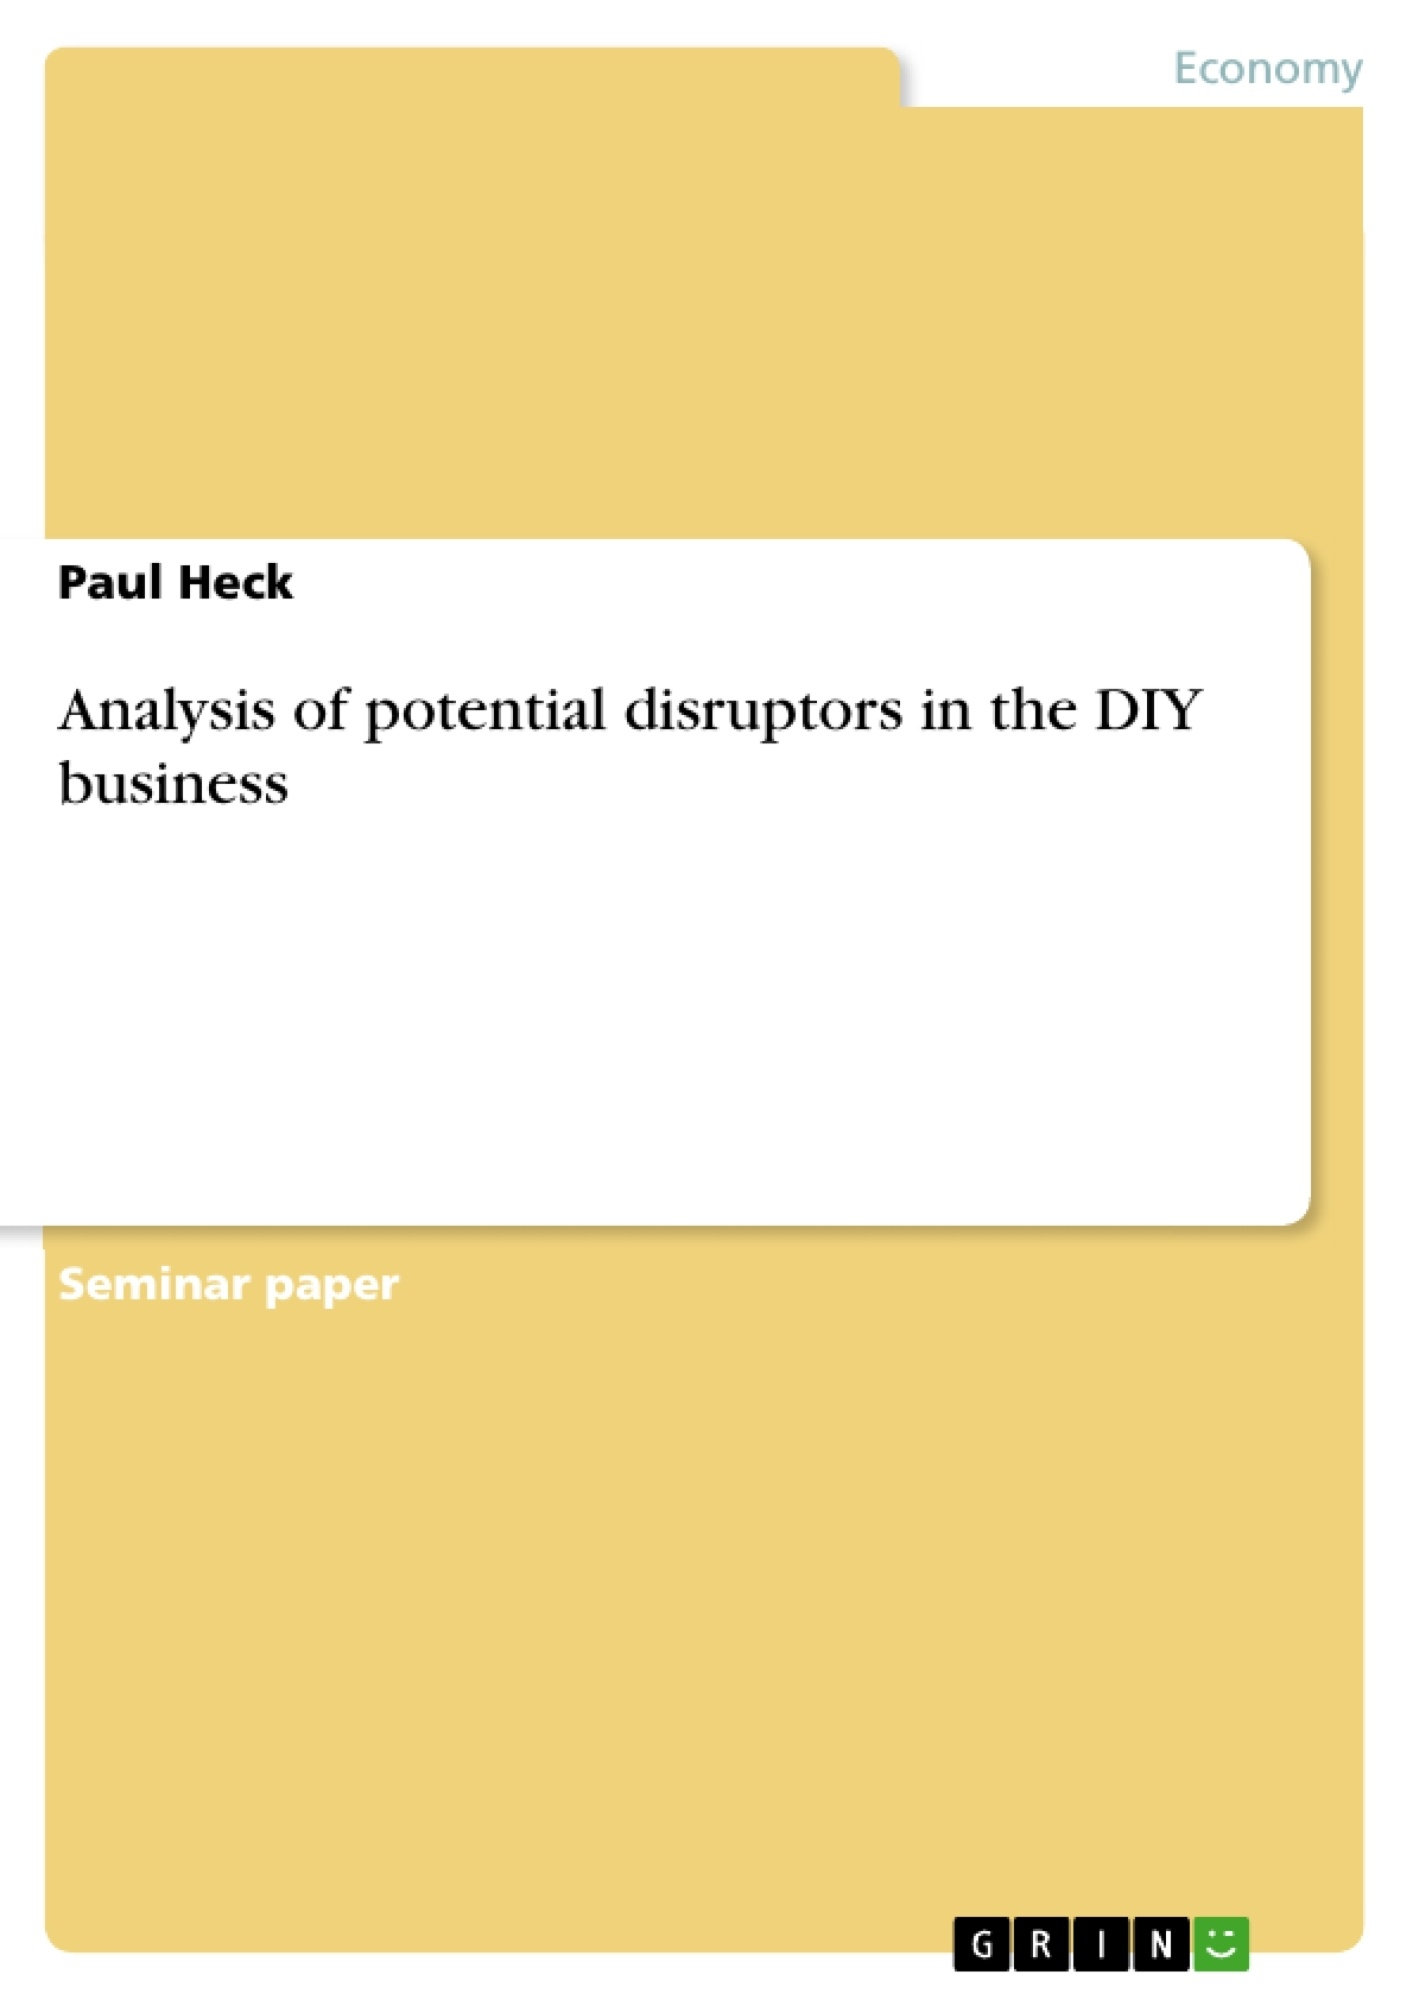 Title: Analysis of potential disruptors in the DIY business